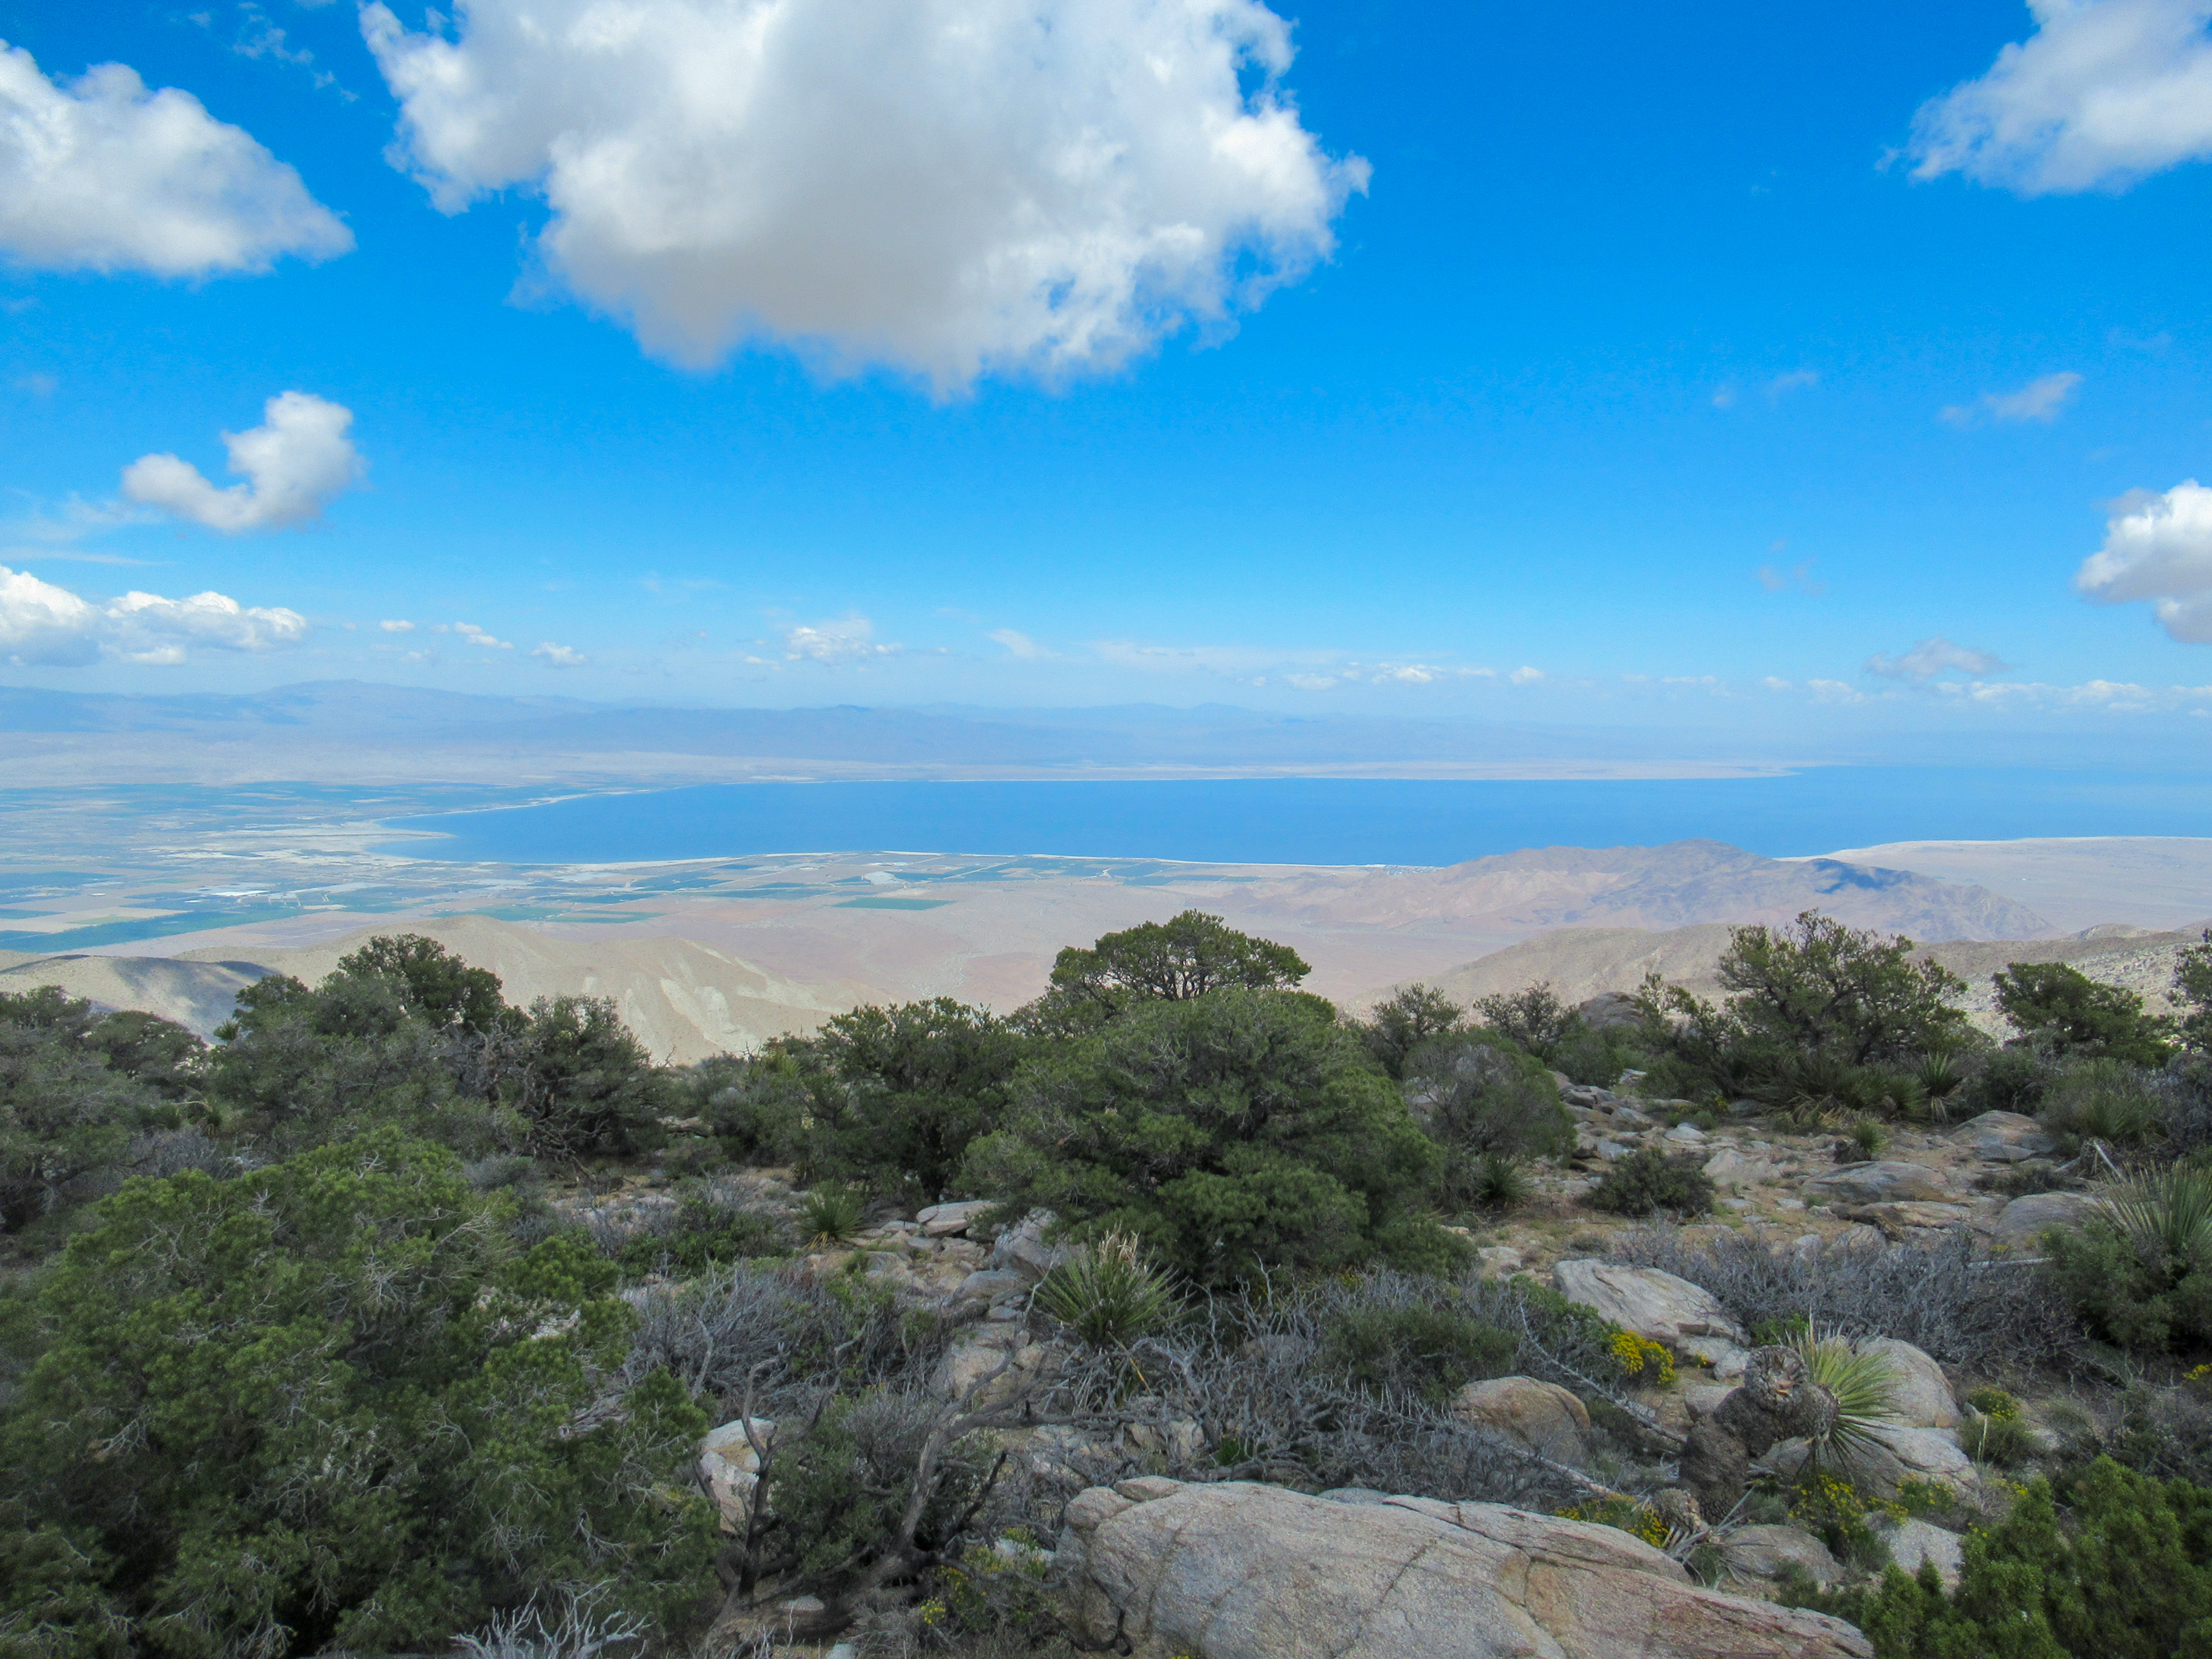 Clouds hang near the Salton Sea.